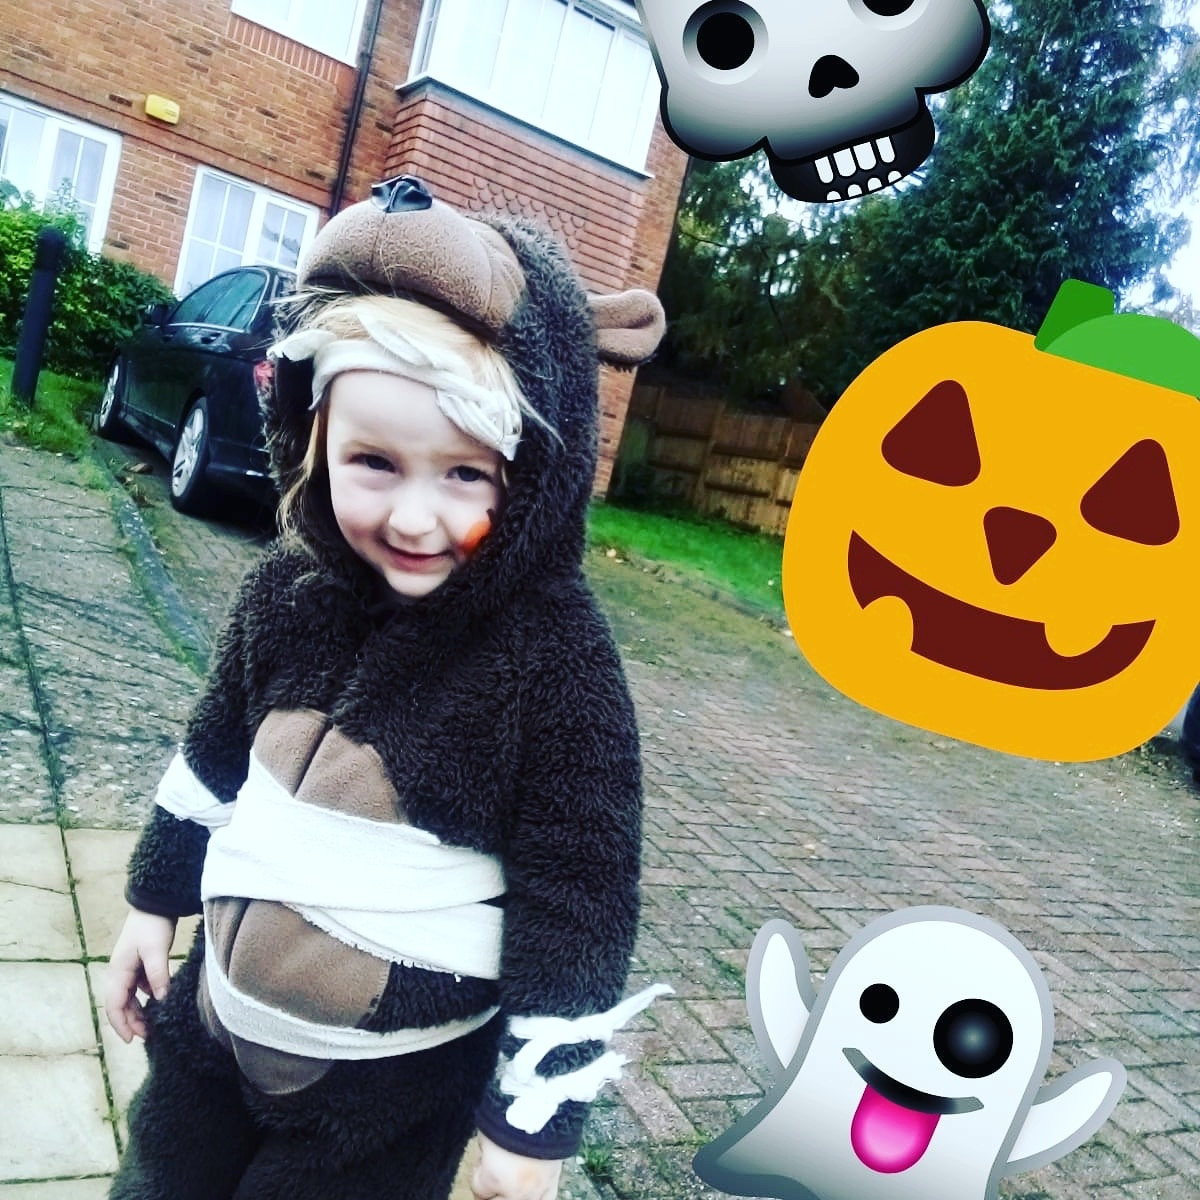 Lucy dresses as a bear with pumpkin and ghost stickers in the image